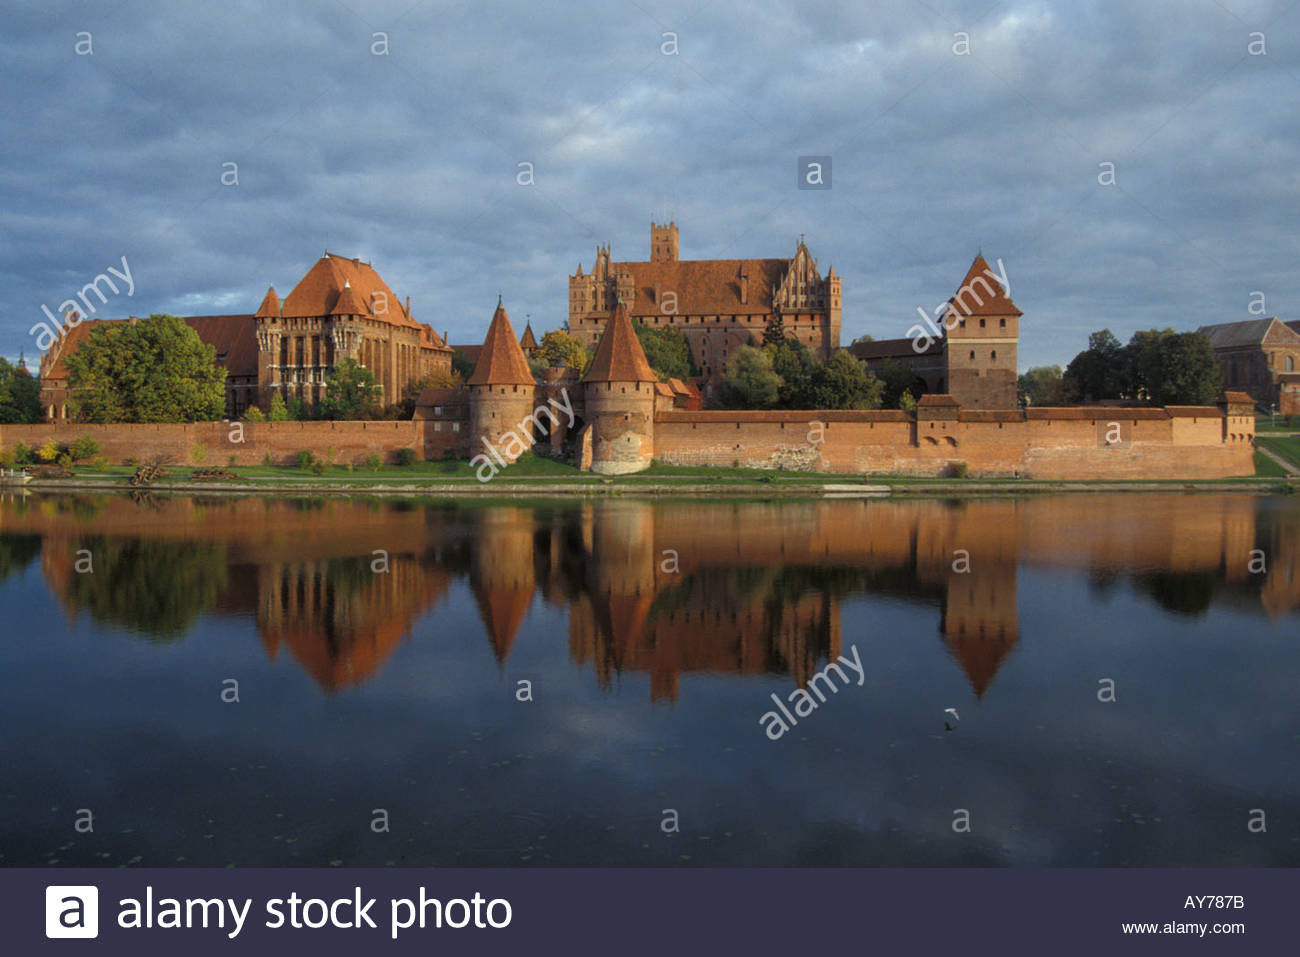 Teutonic Knights Stock Photos & Teutonic Knights Stock Images.